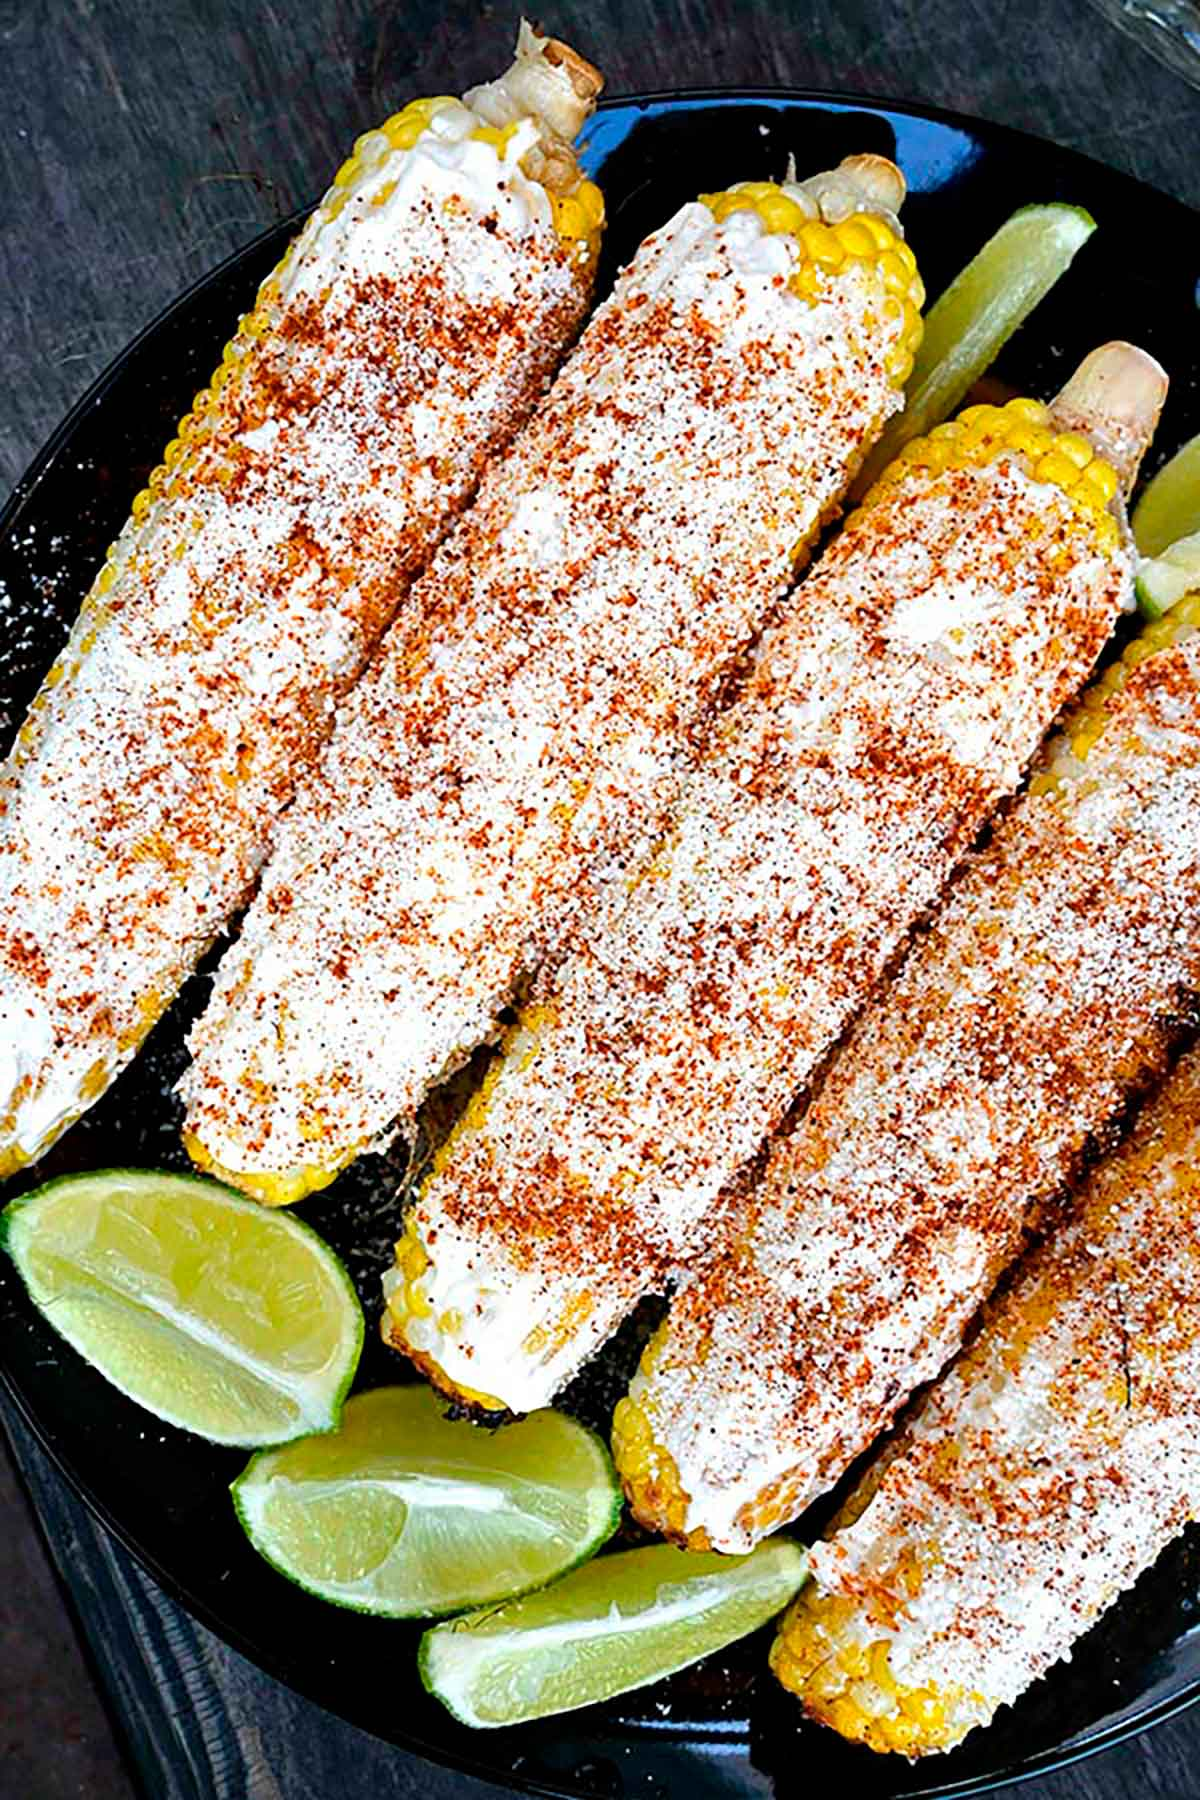 Elote (spiced and cheese-sprinkled corn) on a plate with 4 lime wedges.